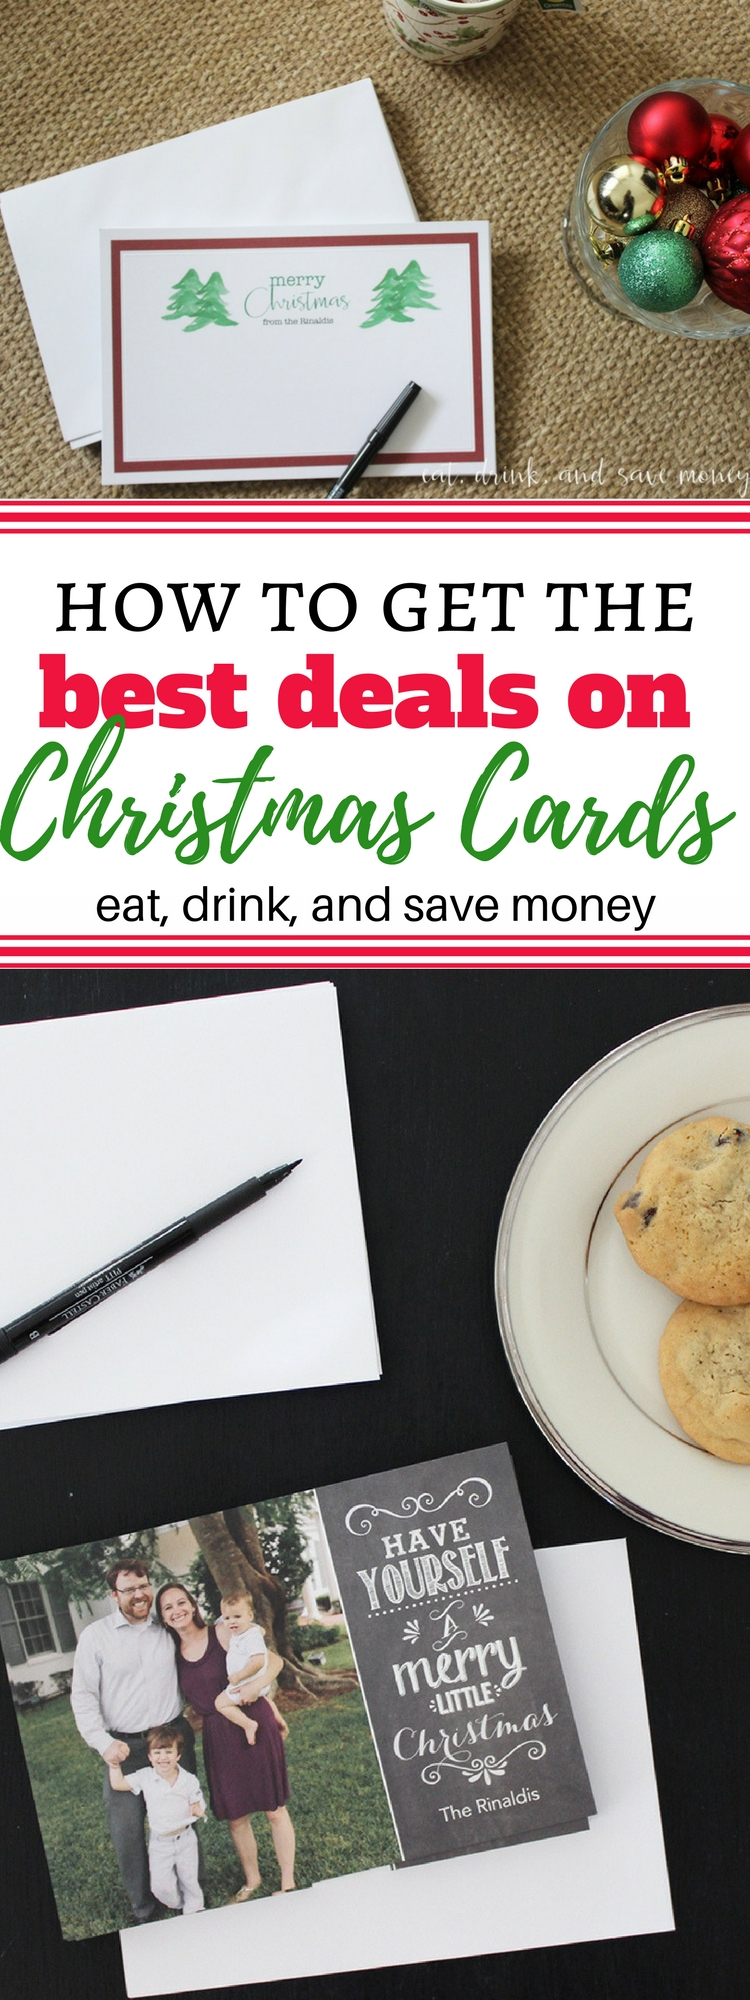 How to Get the Best Deals on Christmas Cards | Christmas on a Budget